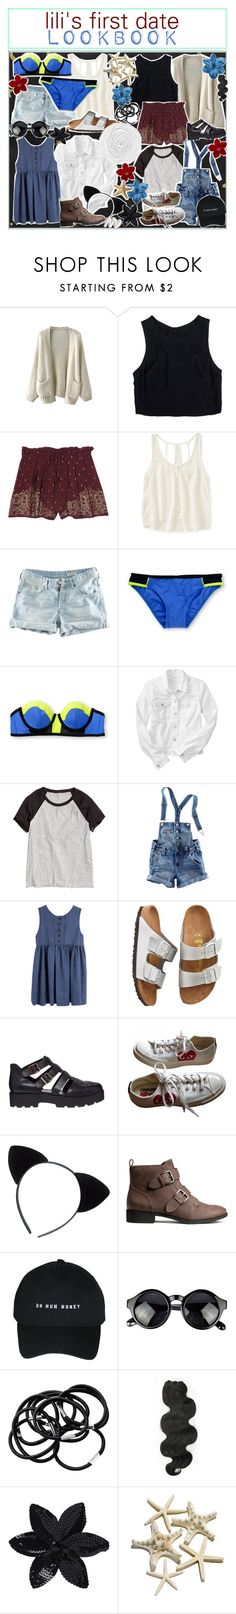 """☼; first date lookbook"" by ocean-clique-xo ❤ liked on Polyvore featuring Lush Clothing, Aéropostale, H&M, Gap, Birkenstock, Vagabond, Converse, &K, ASOS and oceanbabelilixo"